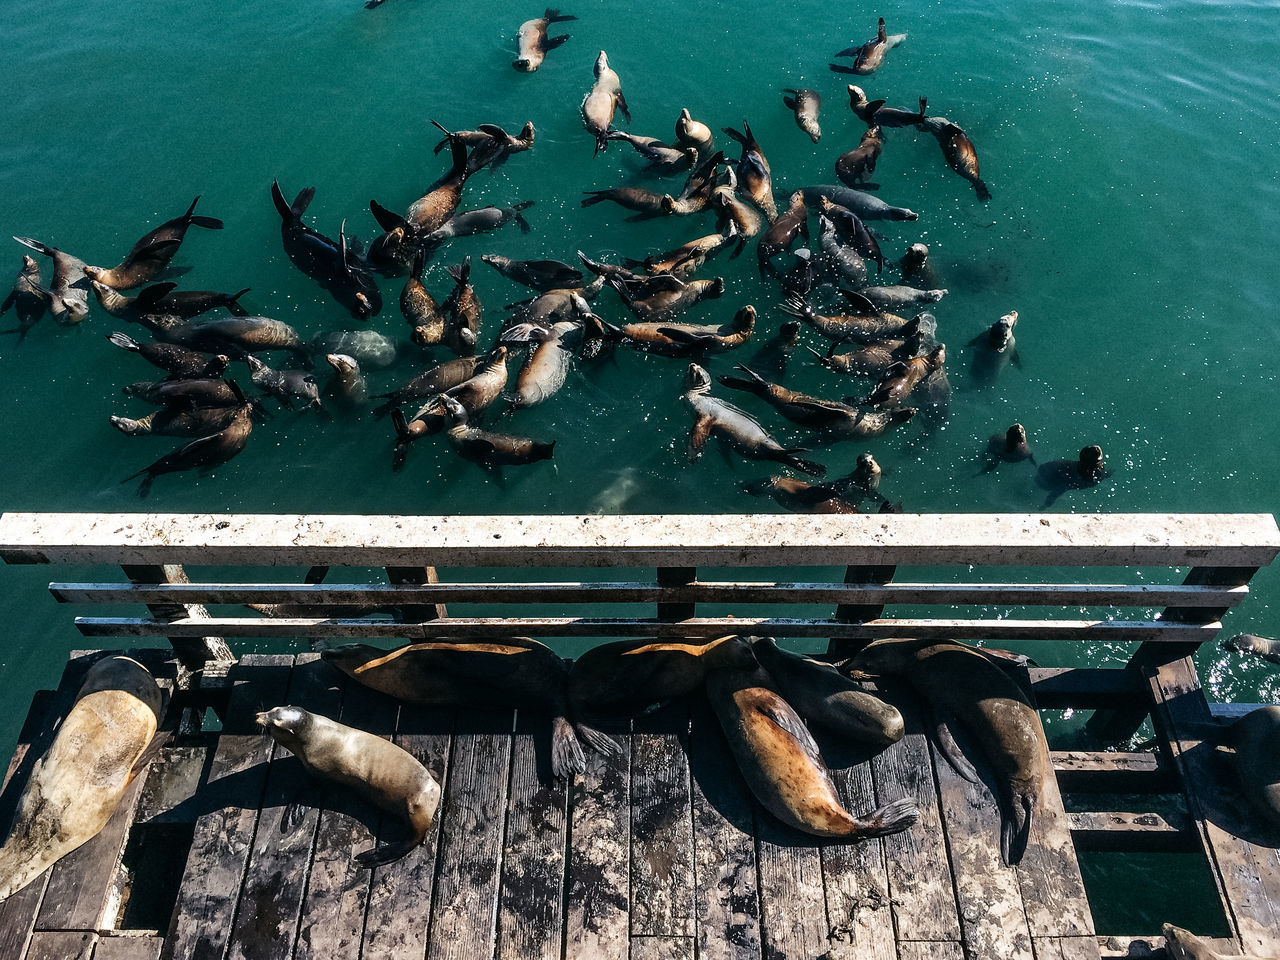 Seals on jetty and water